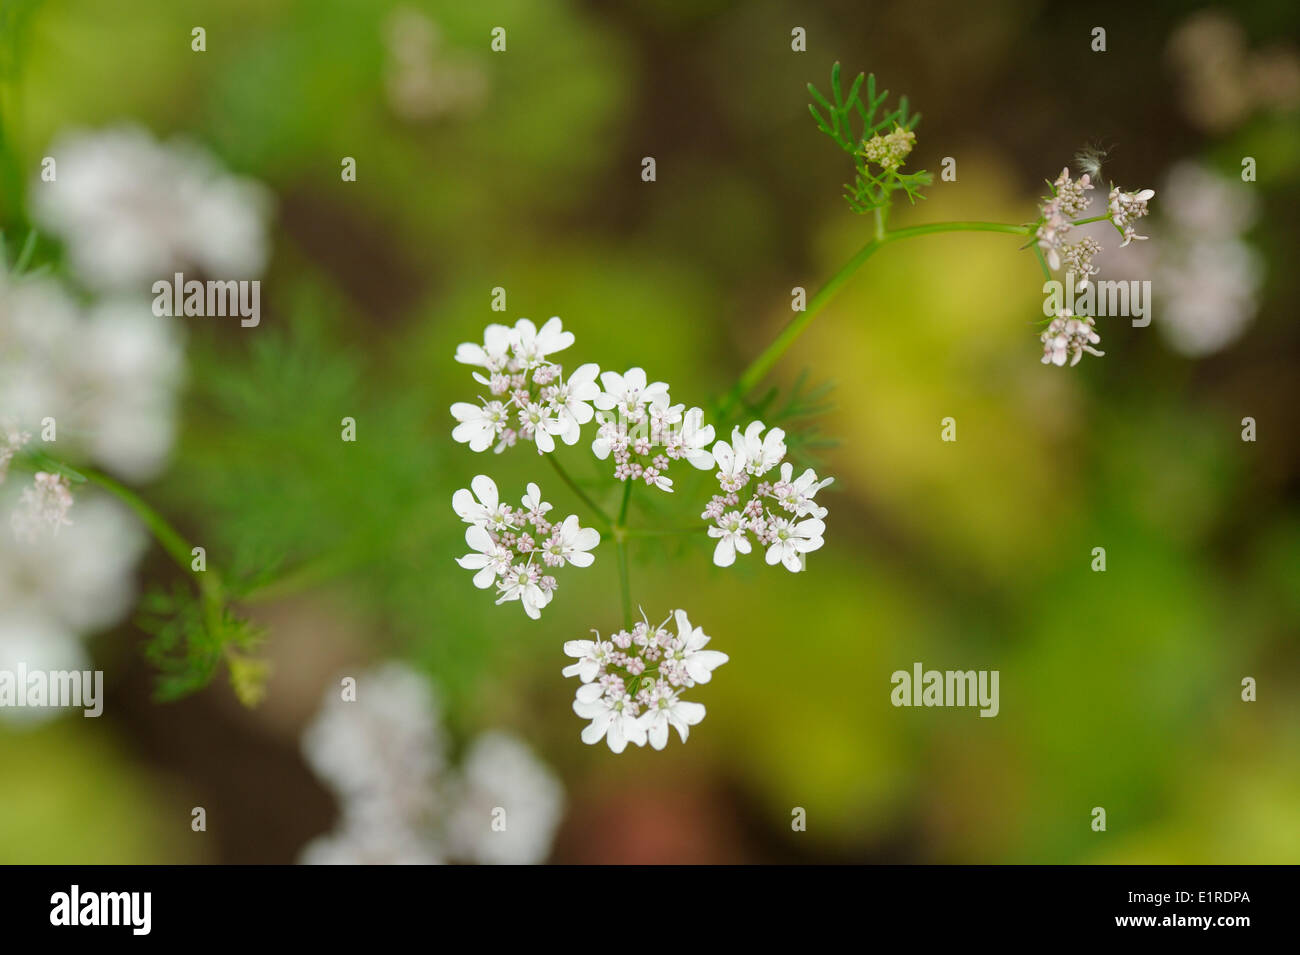 Flowering White Lace Flower Stock Photo